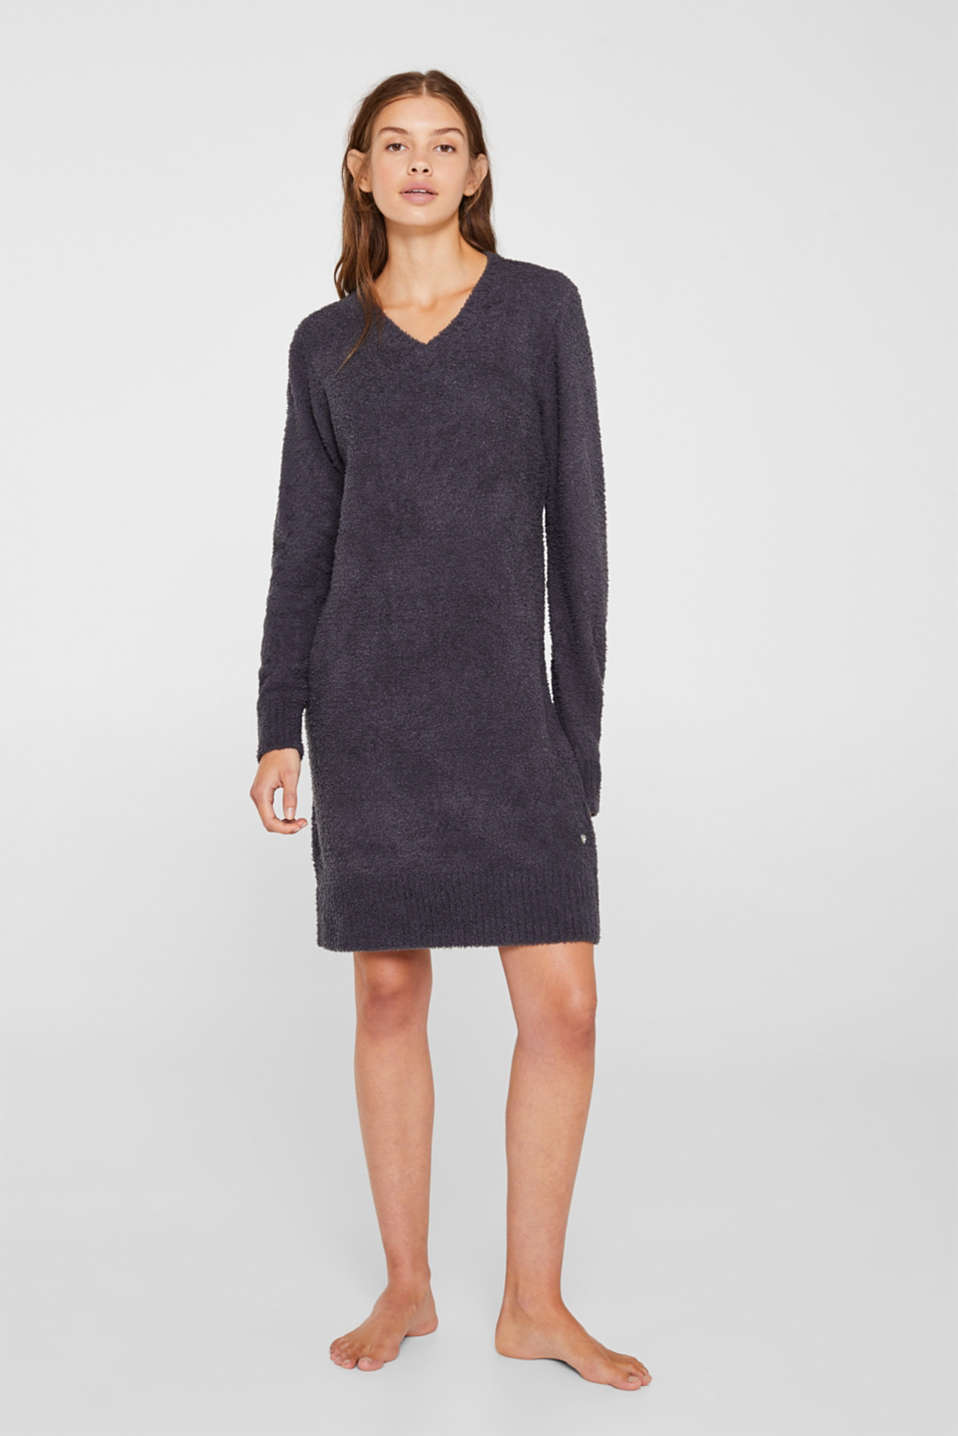 Soft home dress in a plush look, DARK GREY, detail image number 0